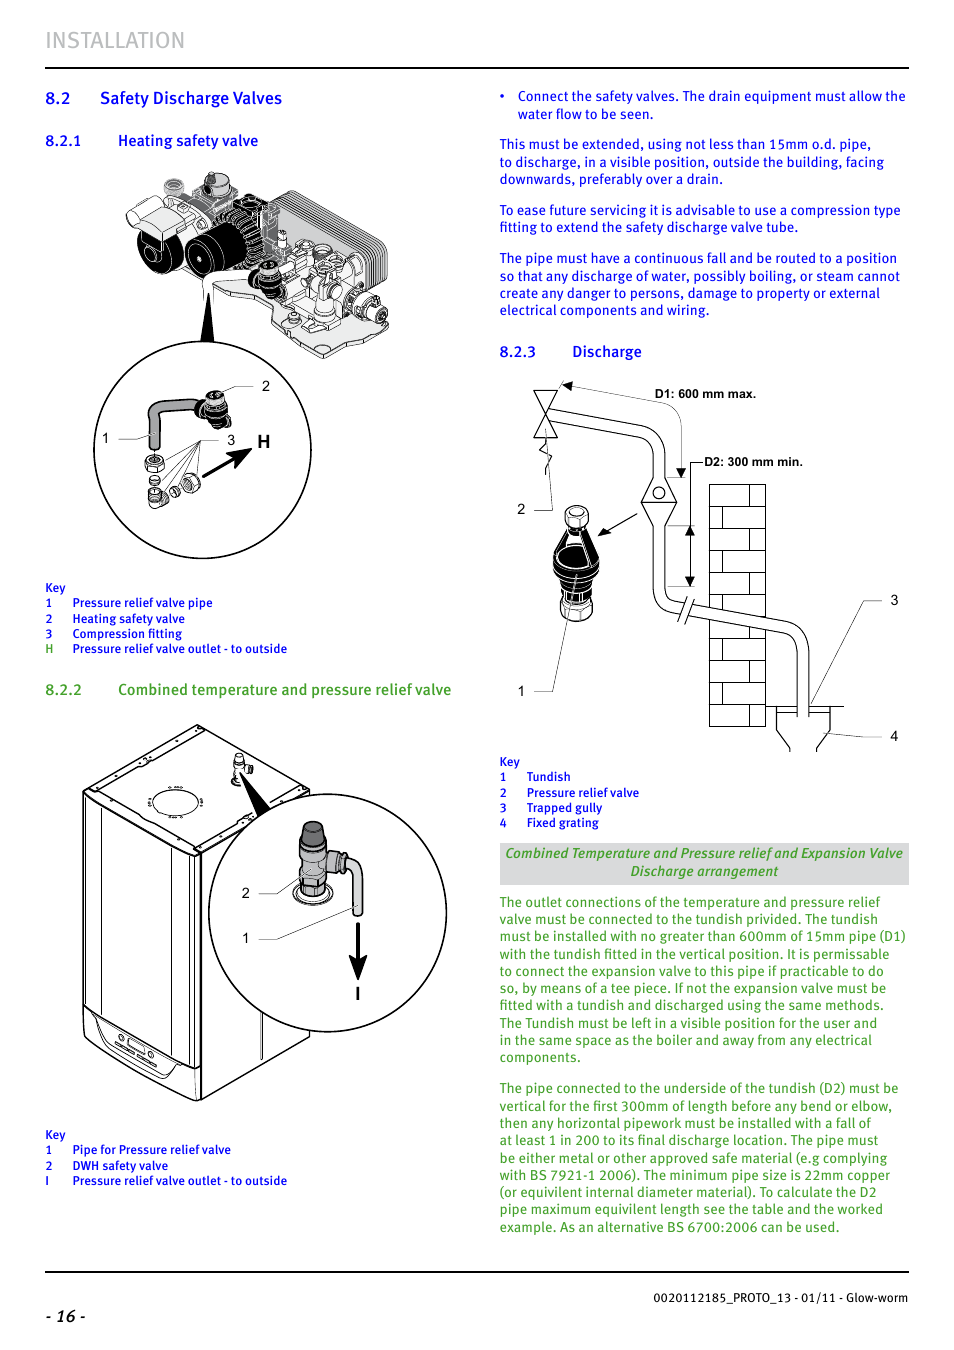 Exelent Glow Worm Boilers Manuals Image Collection - Wiring Diagram ...